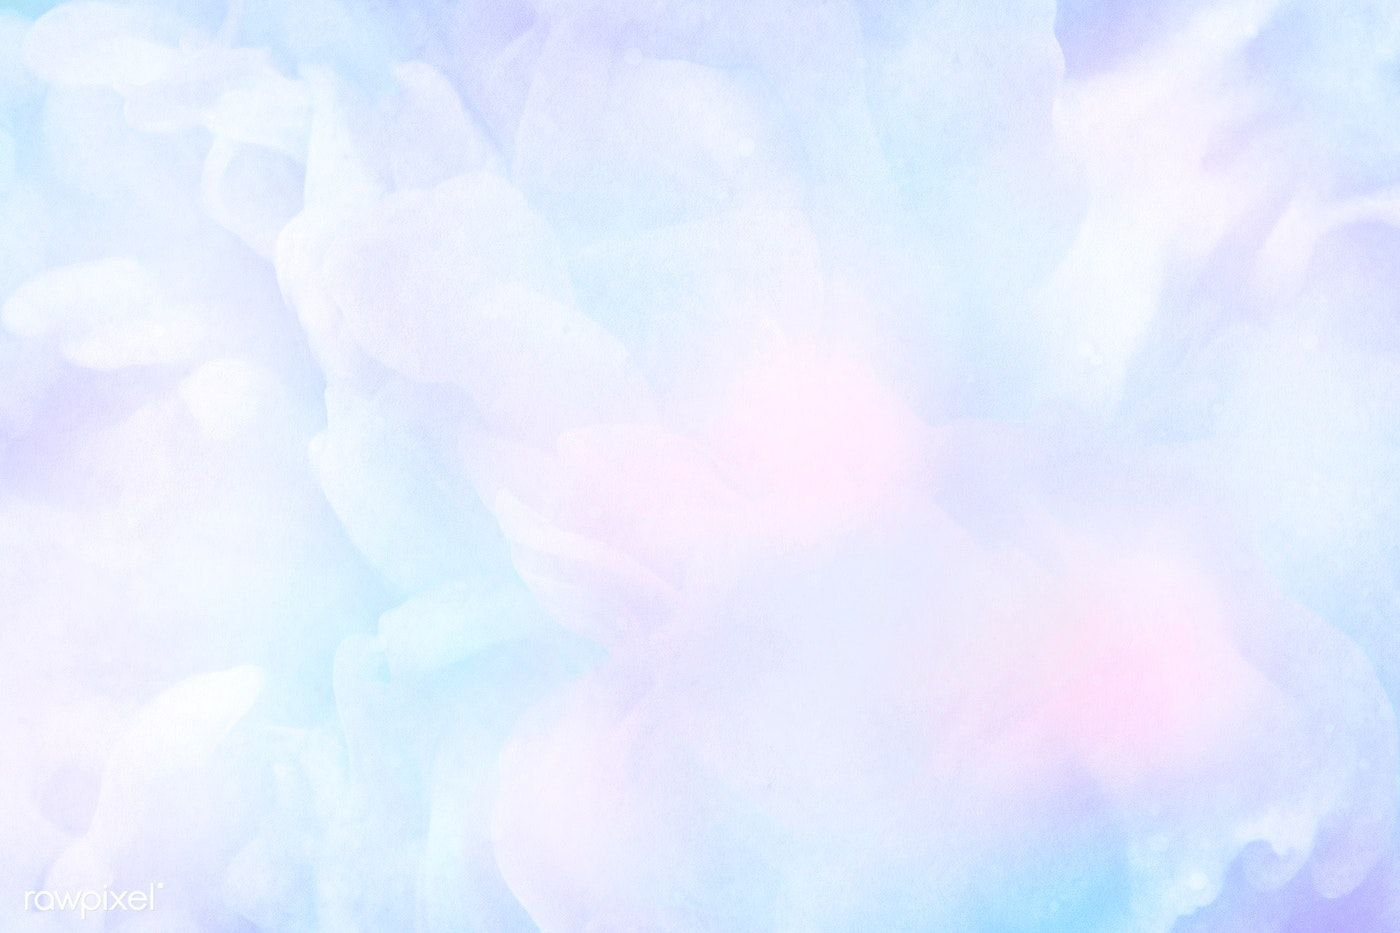 Vibrant Purple Watercolor Painting Background Free Image By